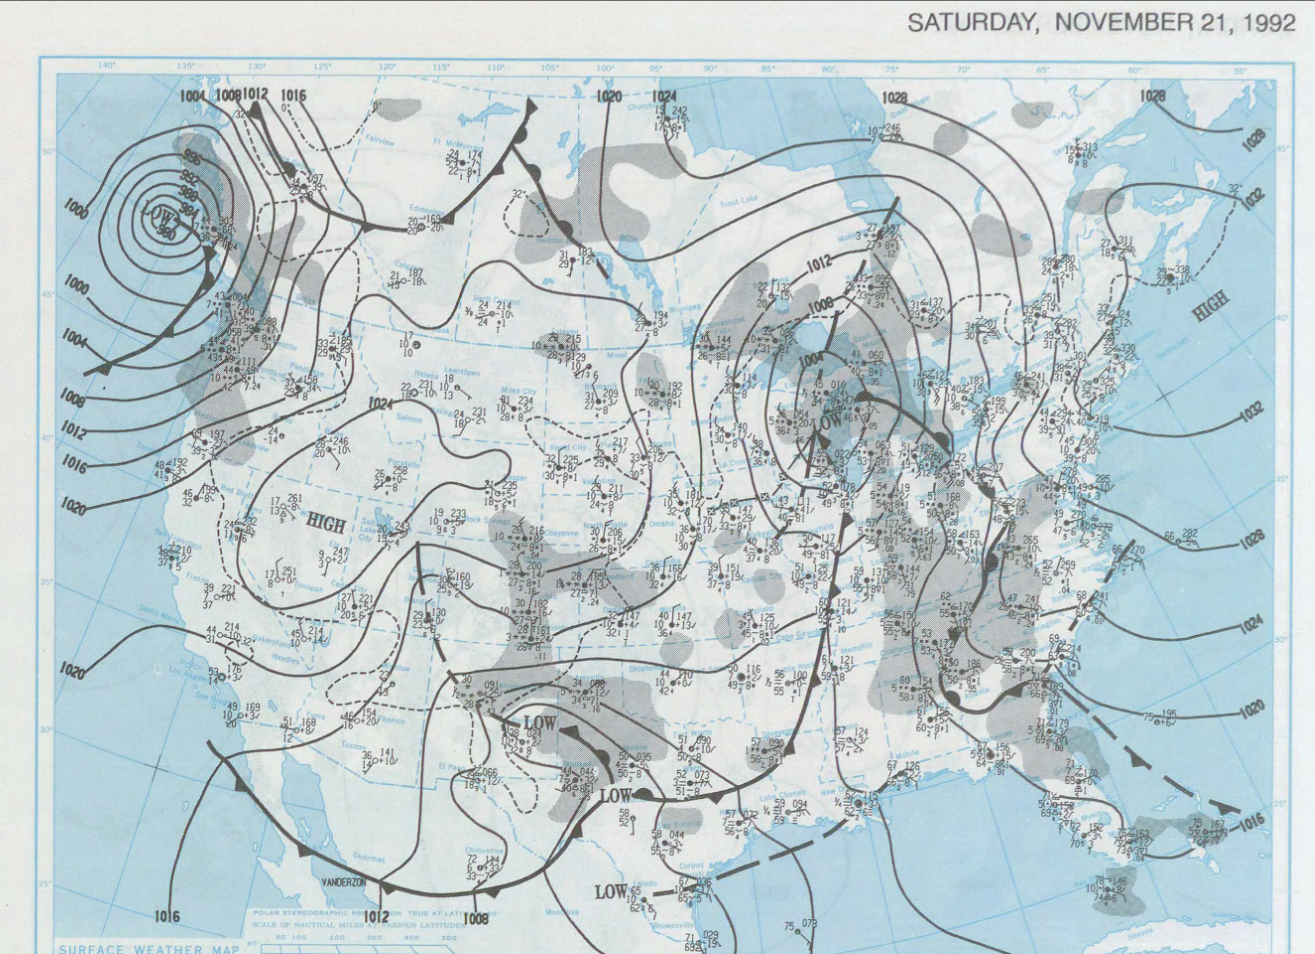 U.S. Daily Weather Map for the morning of November 21, 1992. (NOAA)